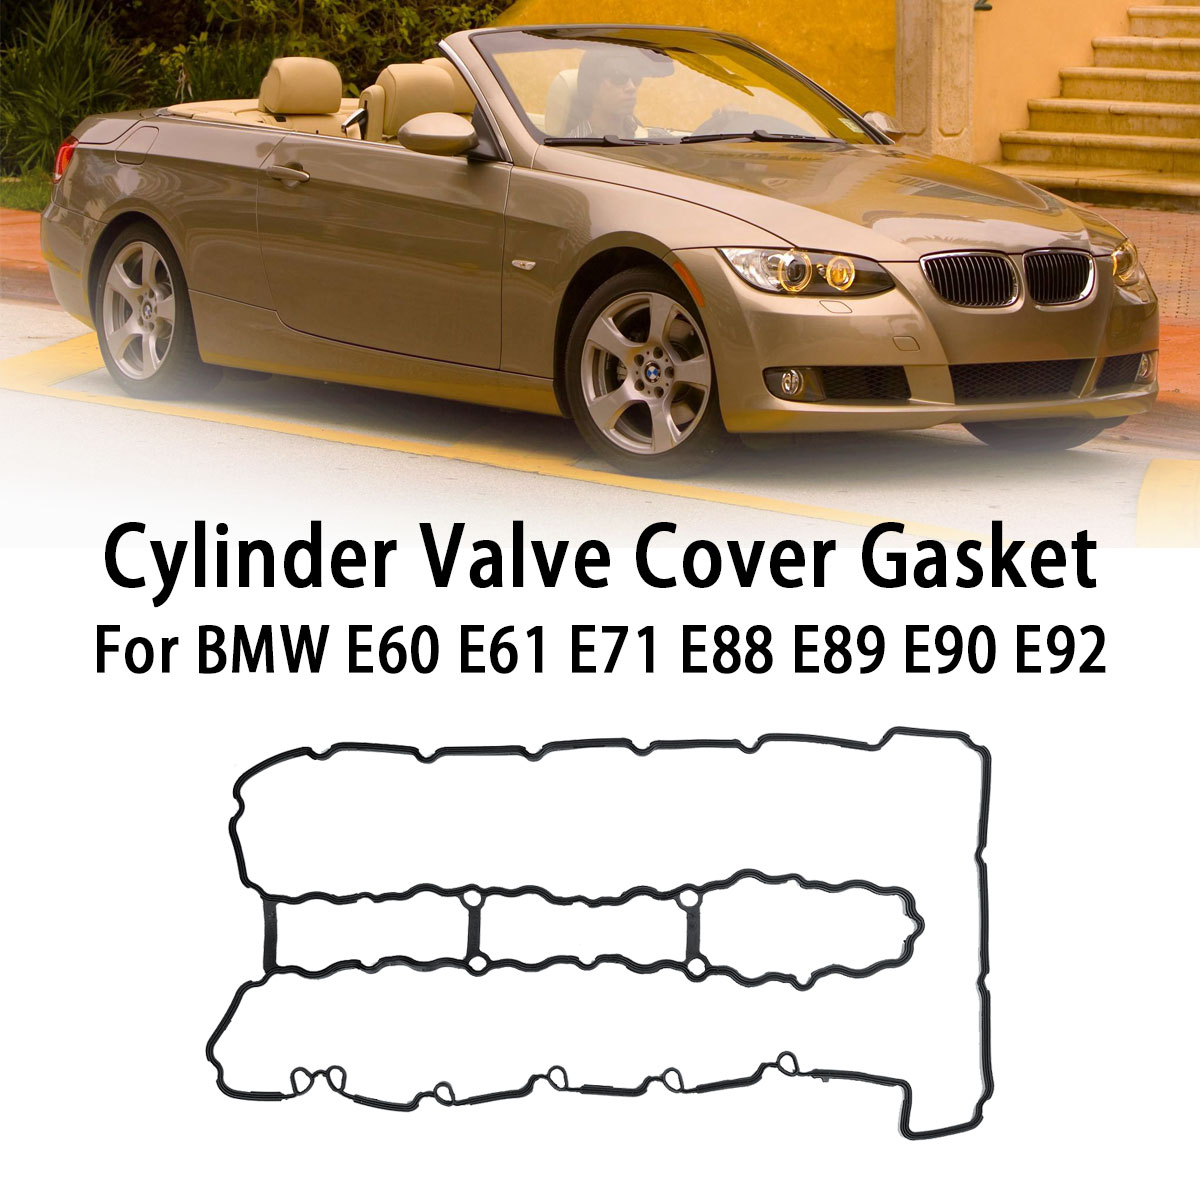 Car <font><b>Engine</b></font> Valve <font><b>Cover</b></font> Gasket 11127565286 For <font><b>BMW</b></font> E60 E71 E82 E83 E88 <font><b>E90</b></font> F01 F02 N54 135i 335i 335is 335xi 535i 2007-2013 image